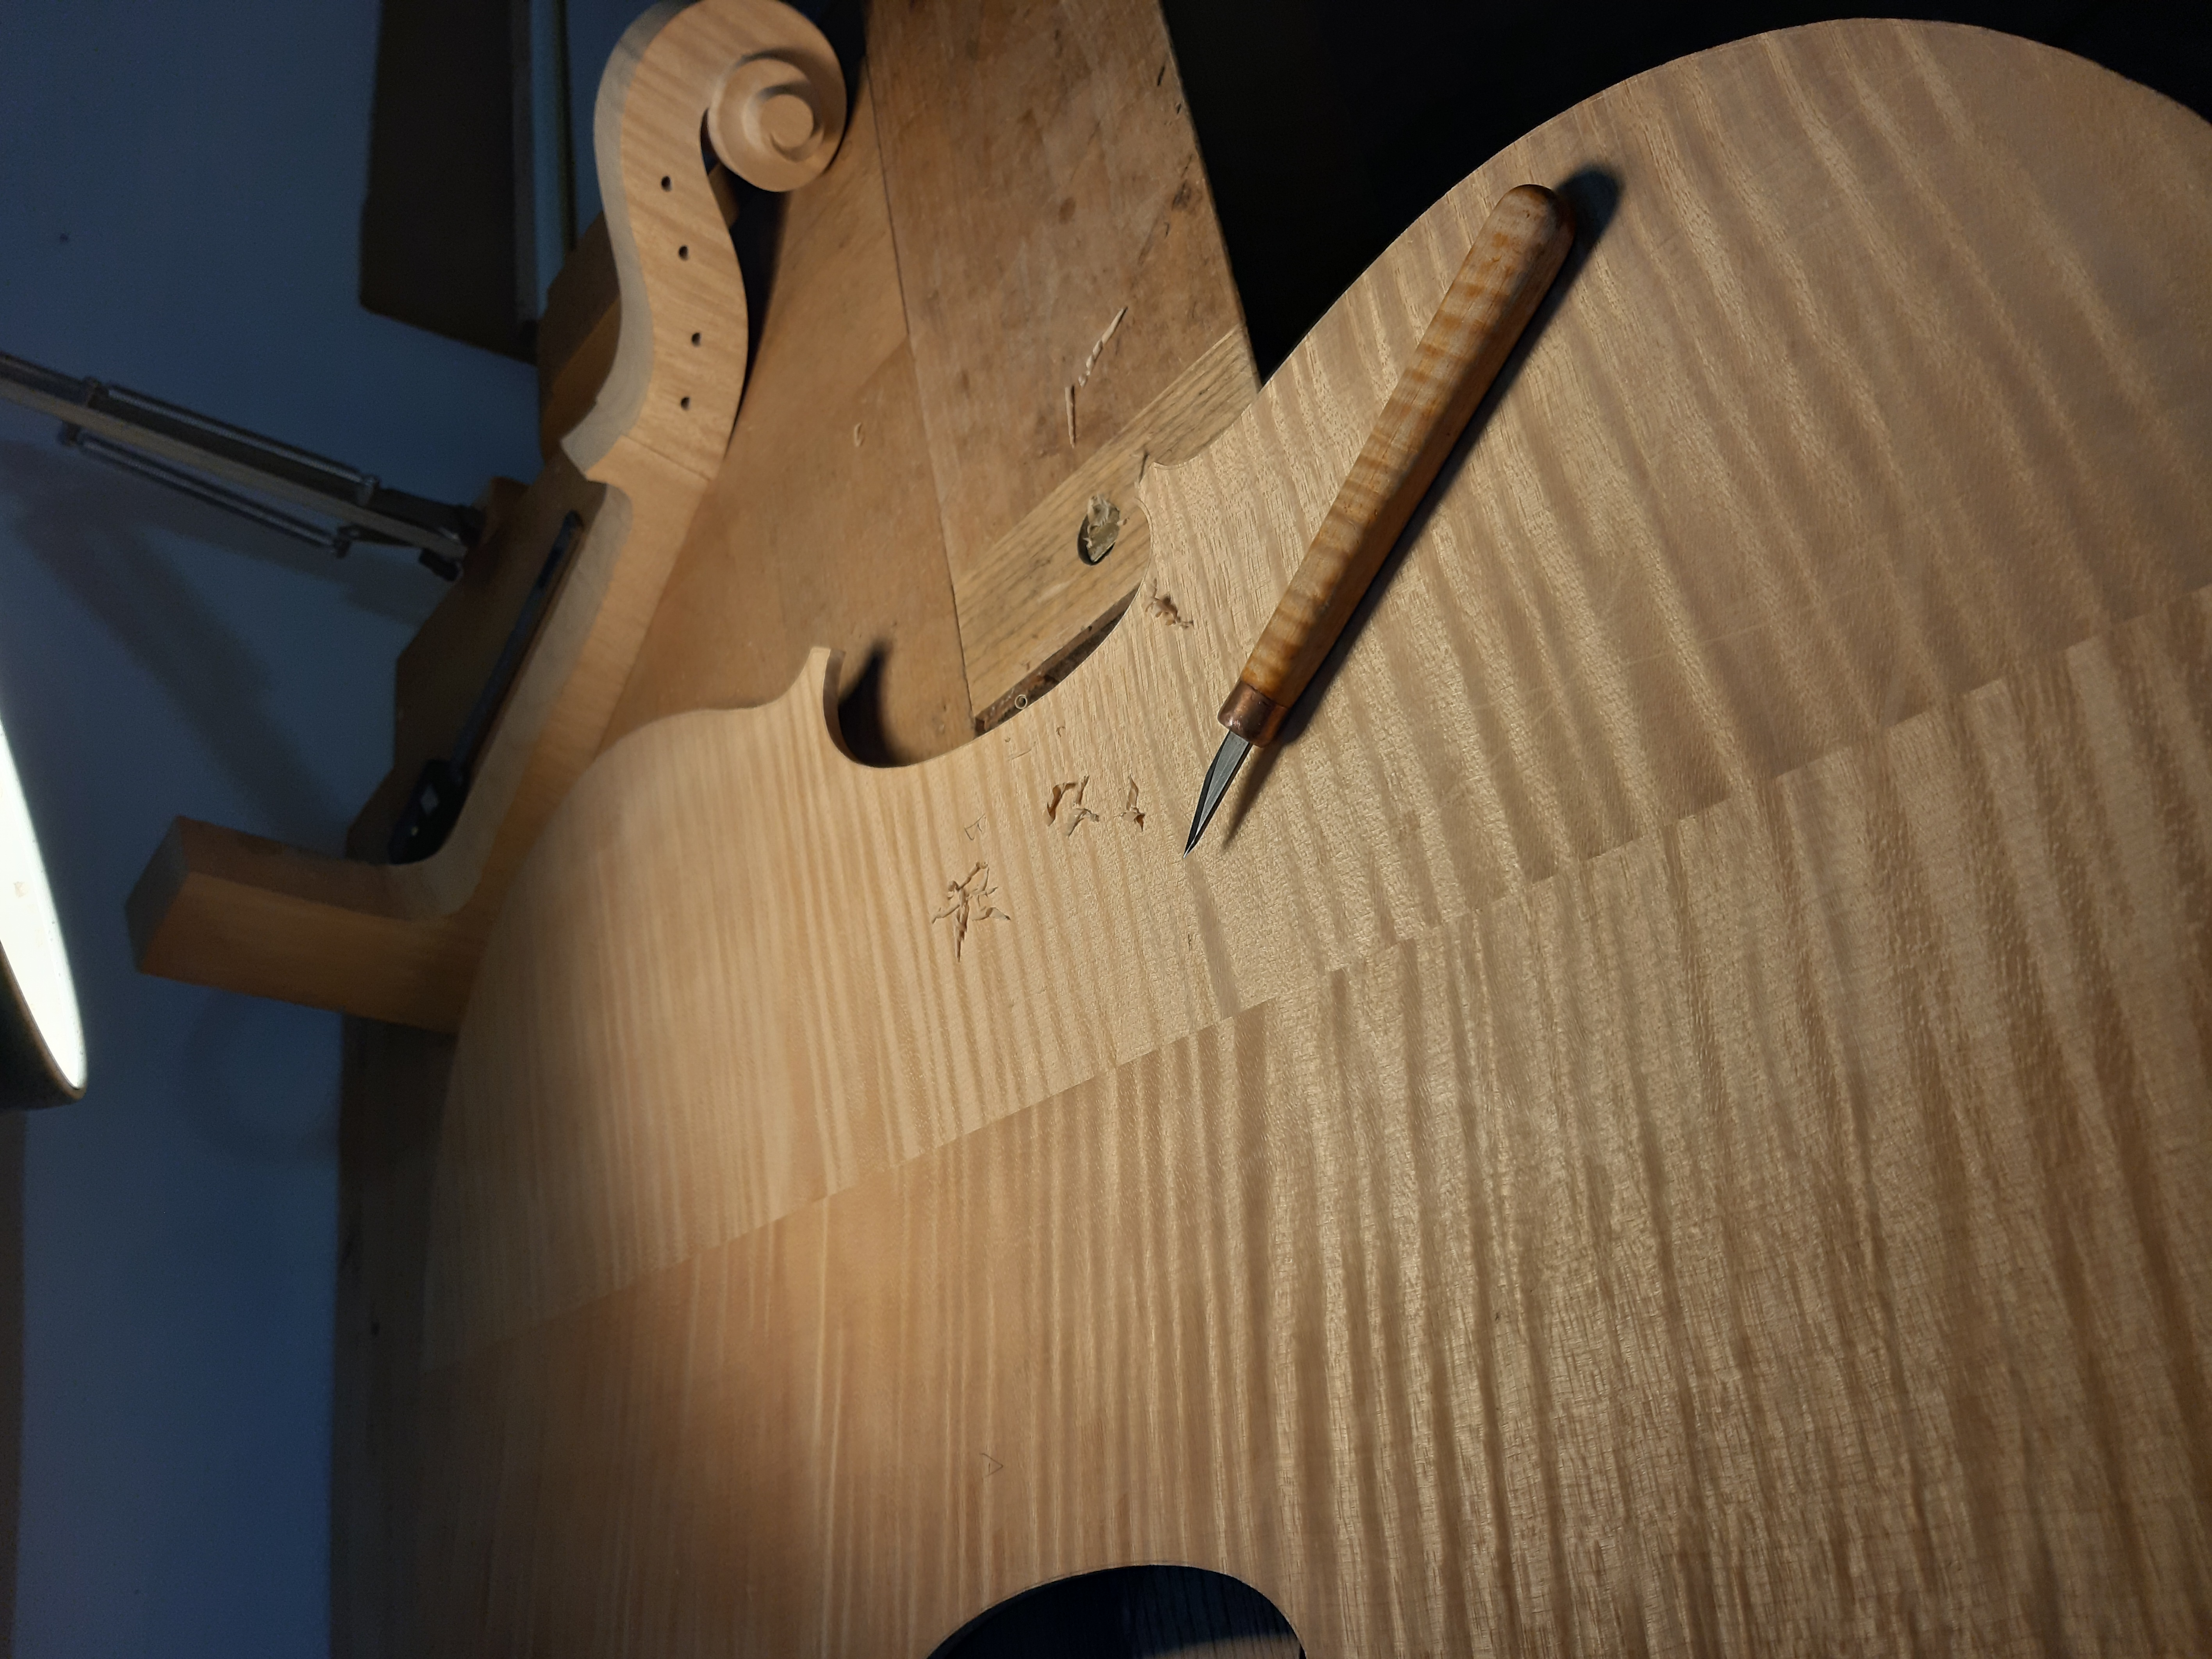 Cello making